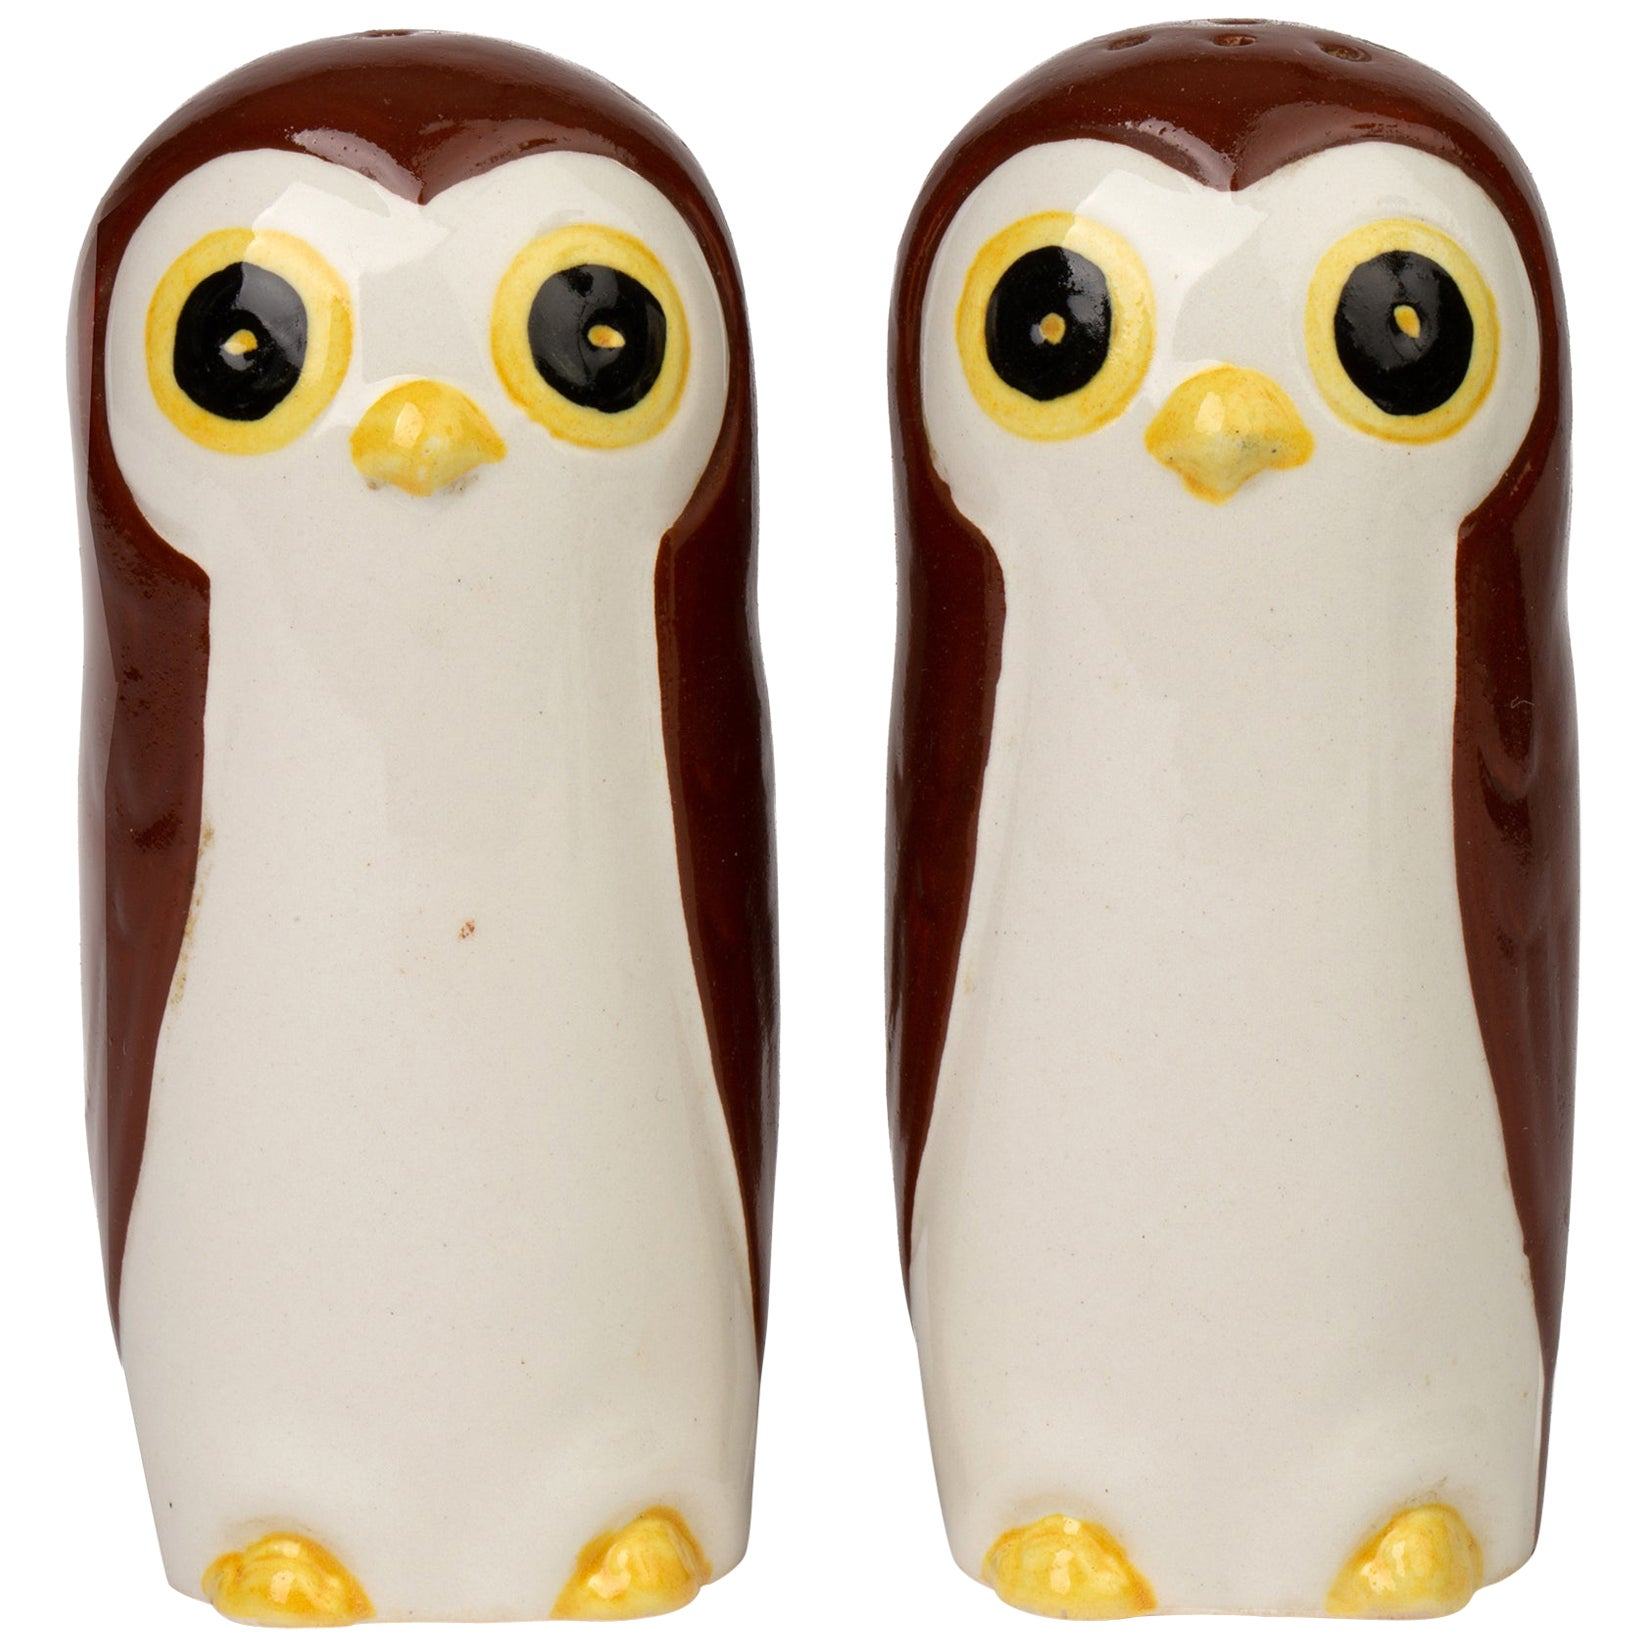 Carltonware Novelty Pottery Owl Cruet Set